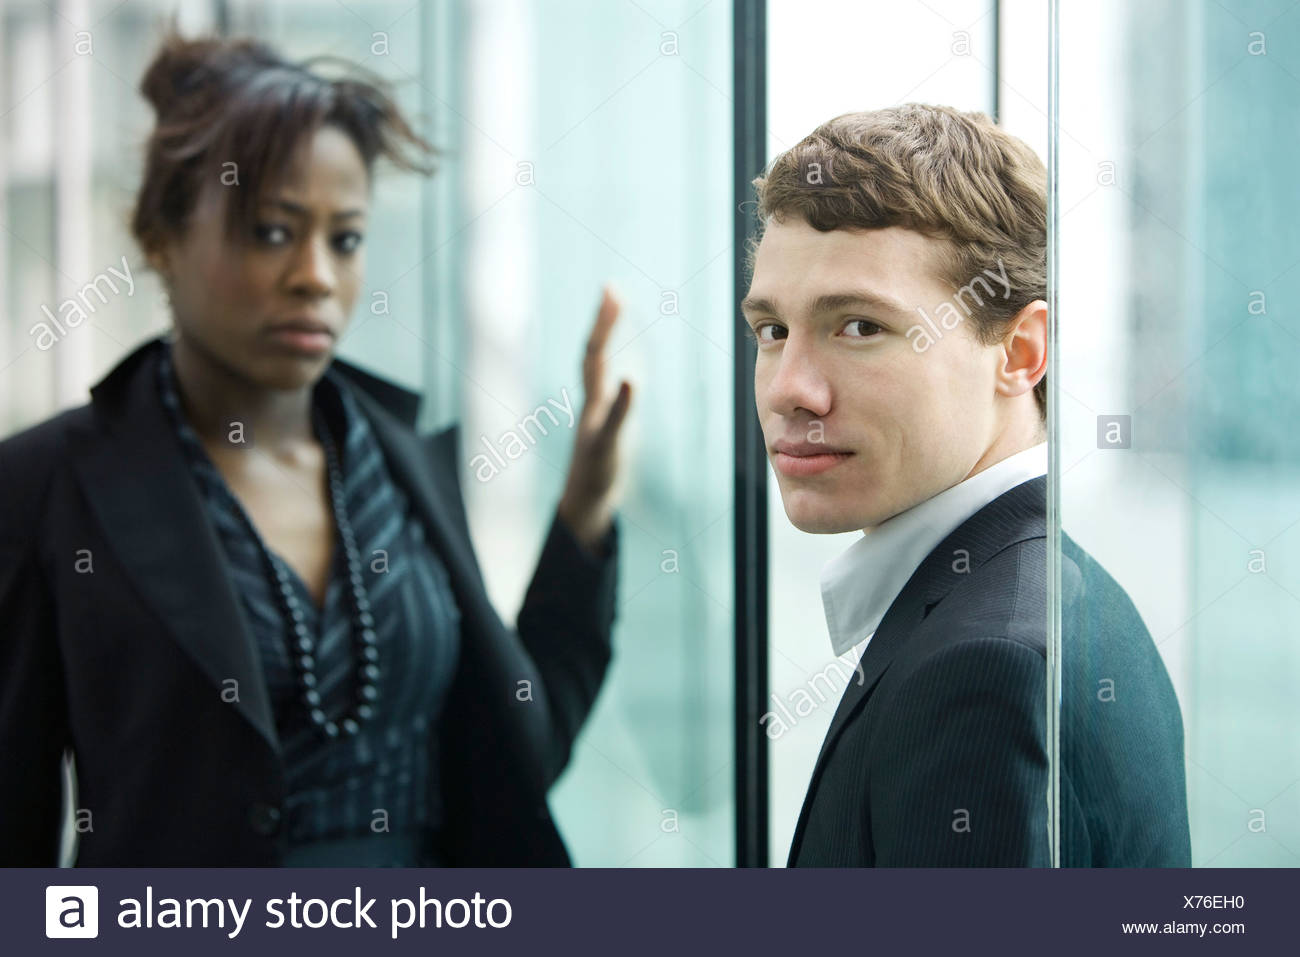 Businessman and businesswoman looking at camera with uncertainty - Stock Image